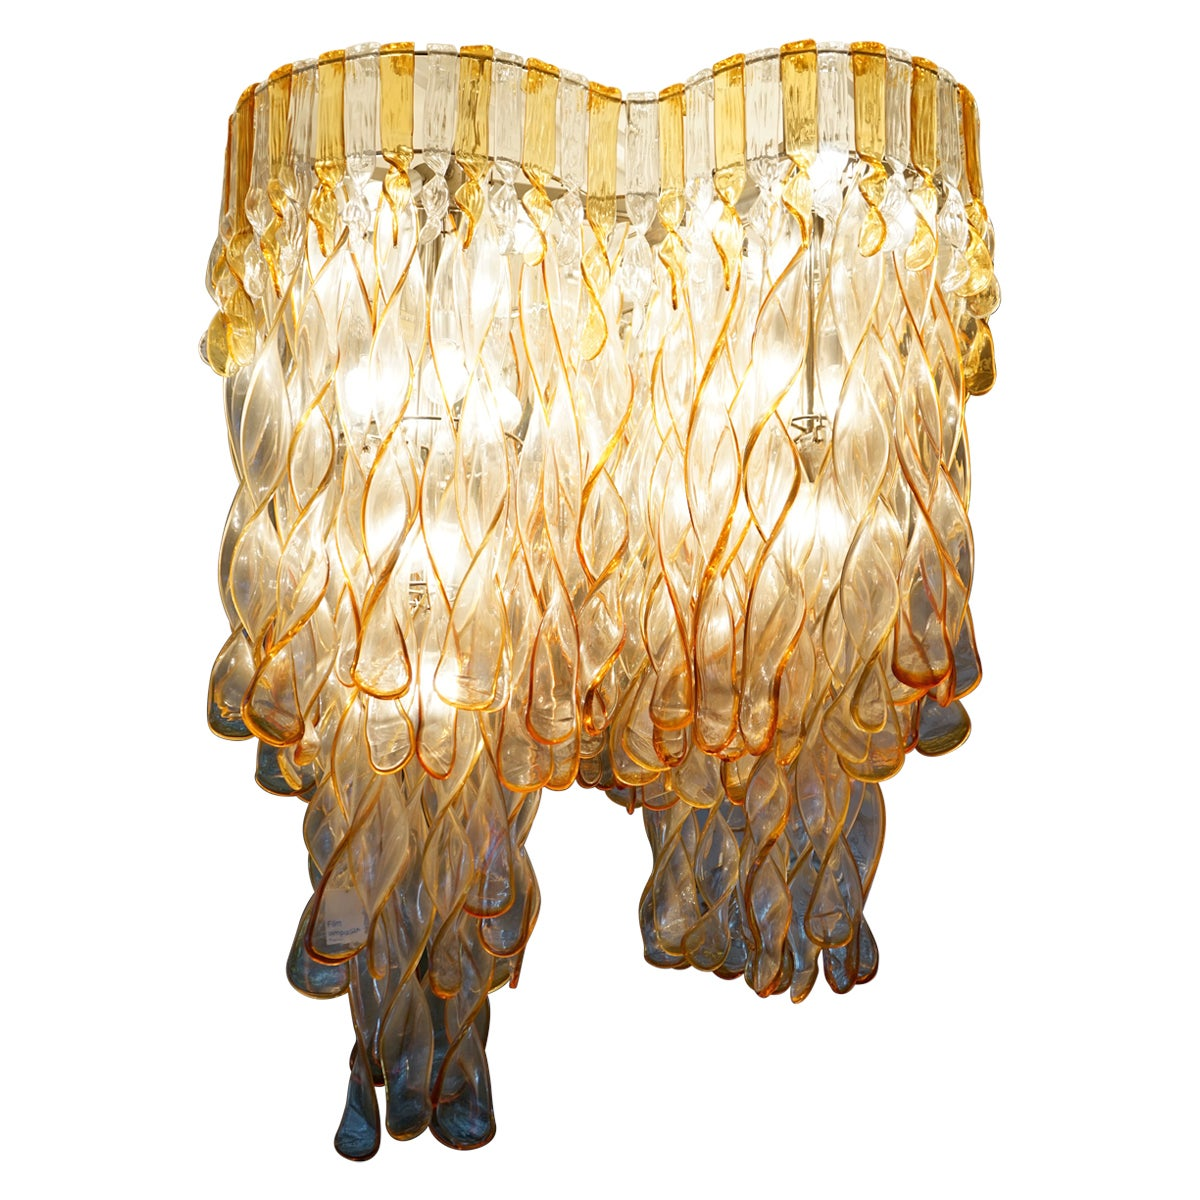 Important Large Chandelier Elica Model  by Aureliano Toso Murano 1960 - 70